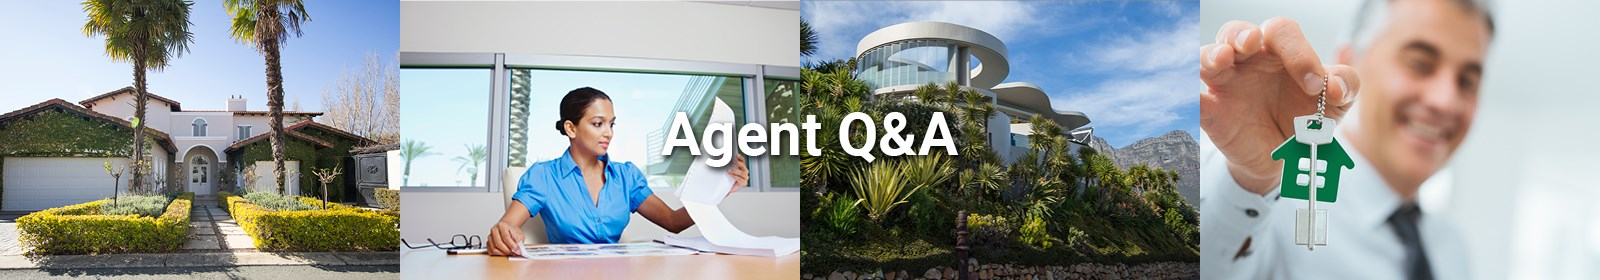 Estate agent Q&A on Garsfontein